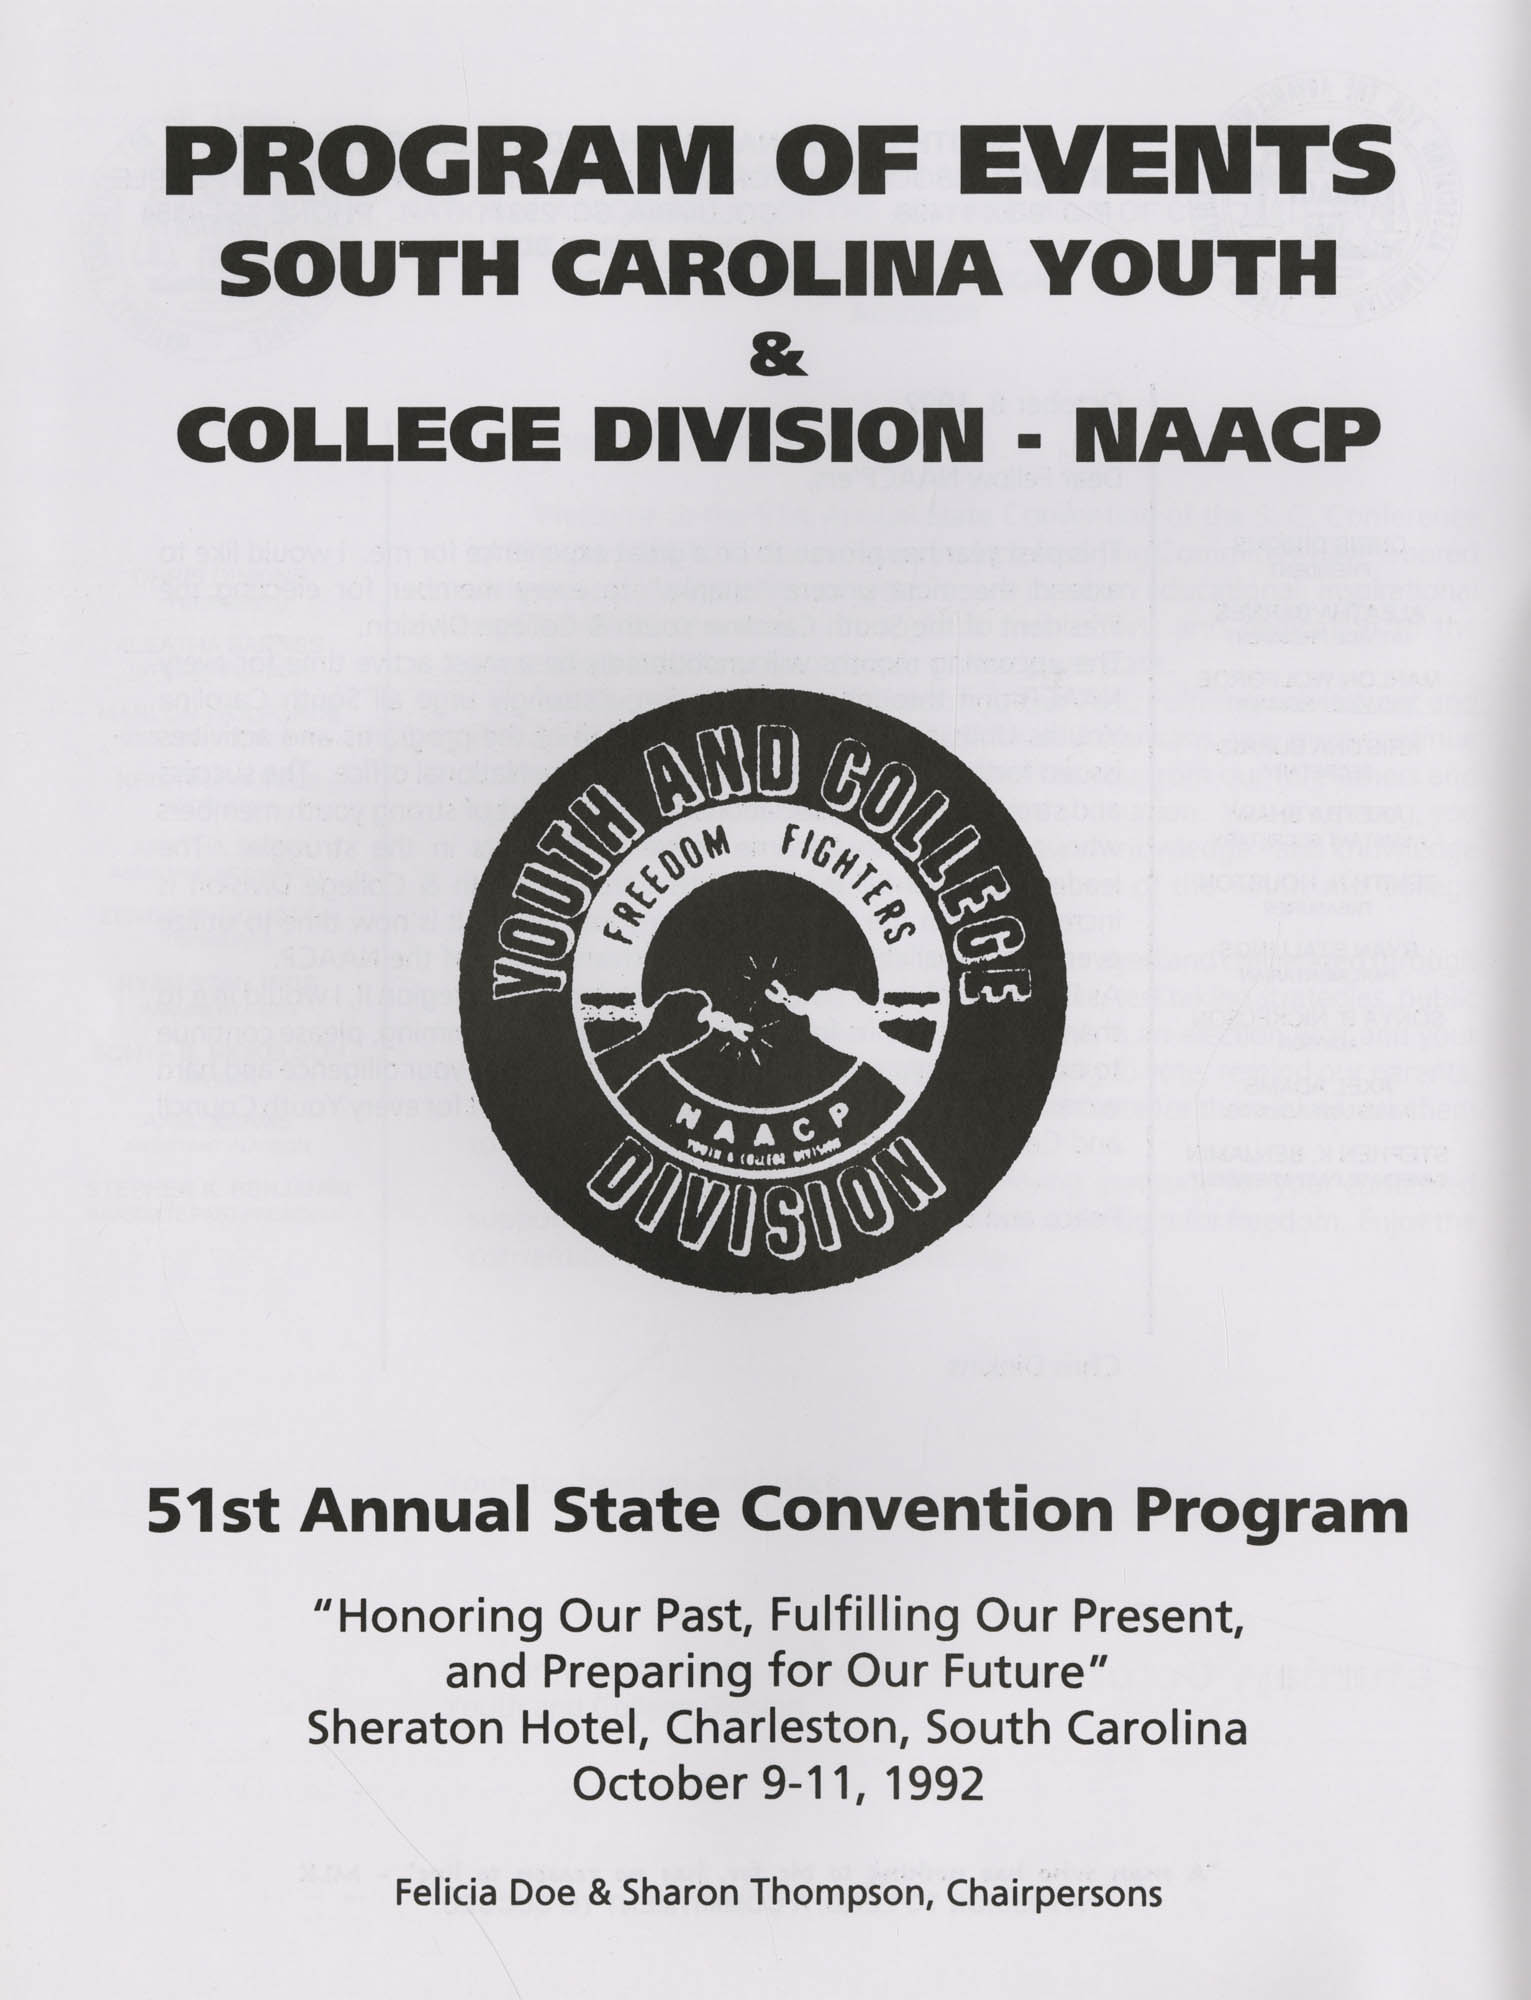 Charleston Branch of the NAACP 51st Annual State Convention Program, Page 12